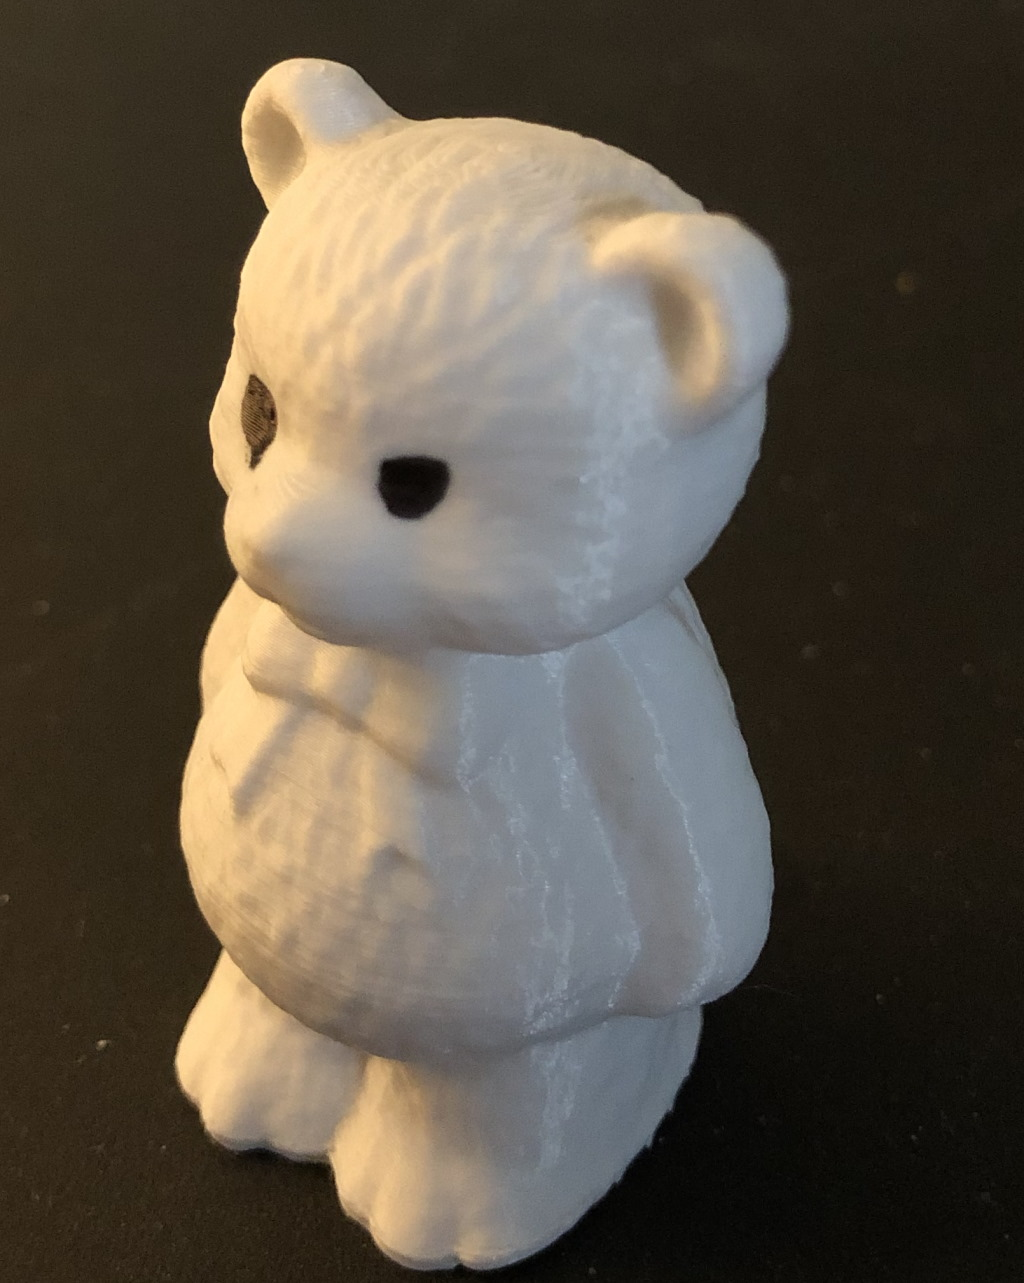 BIQU B1 - First prints